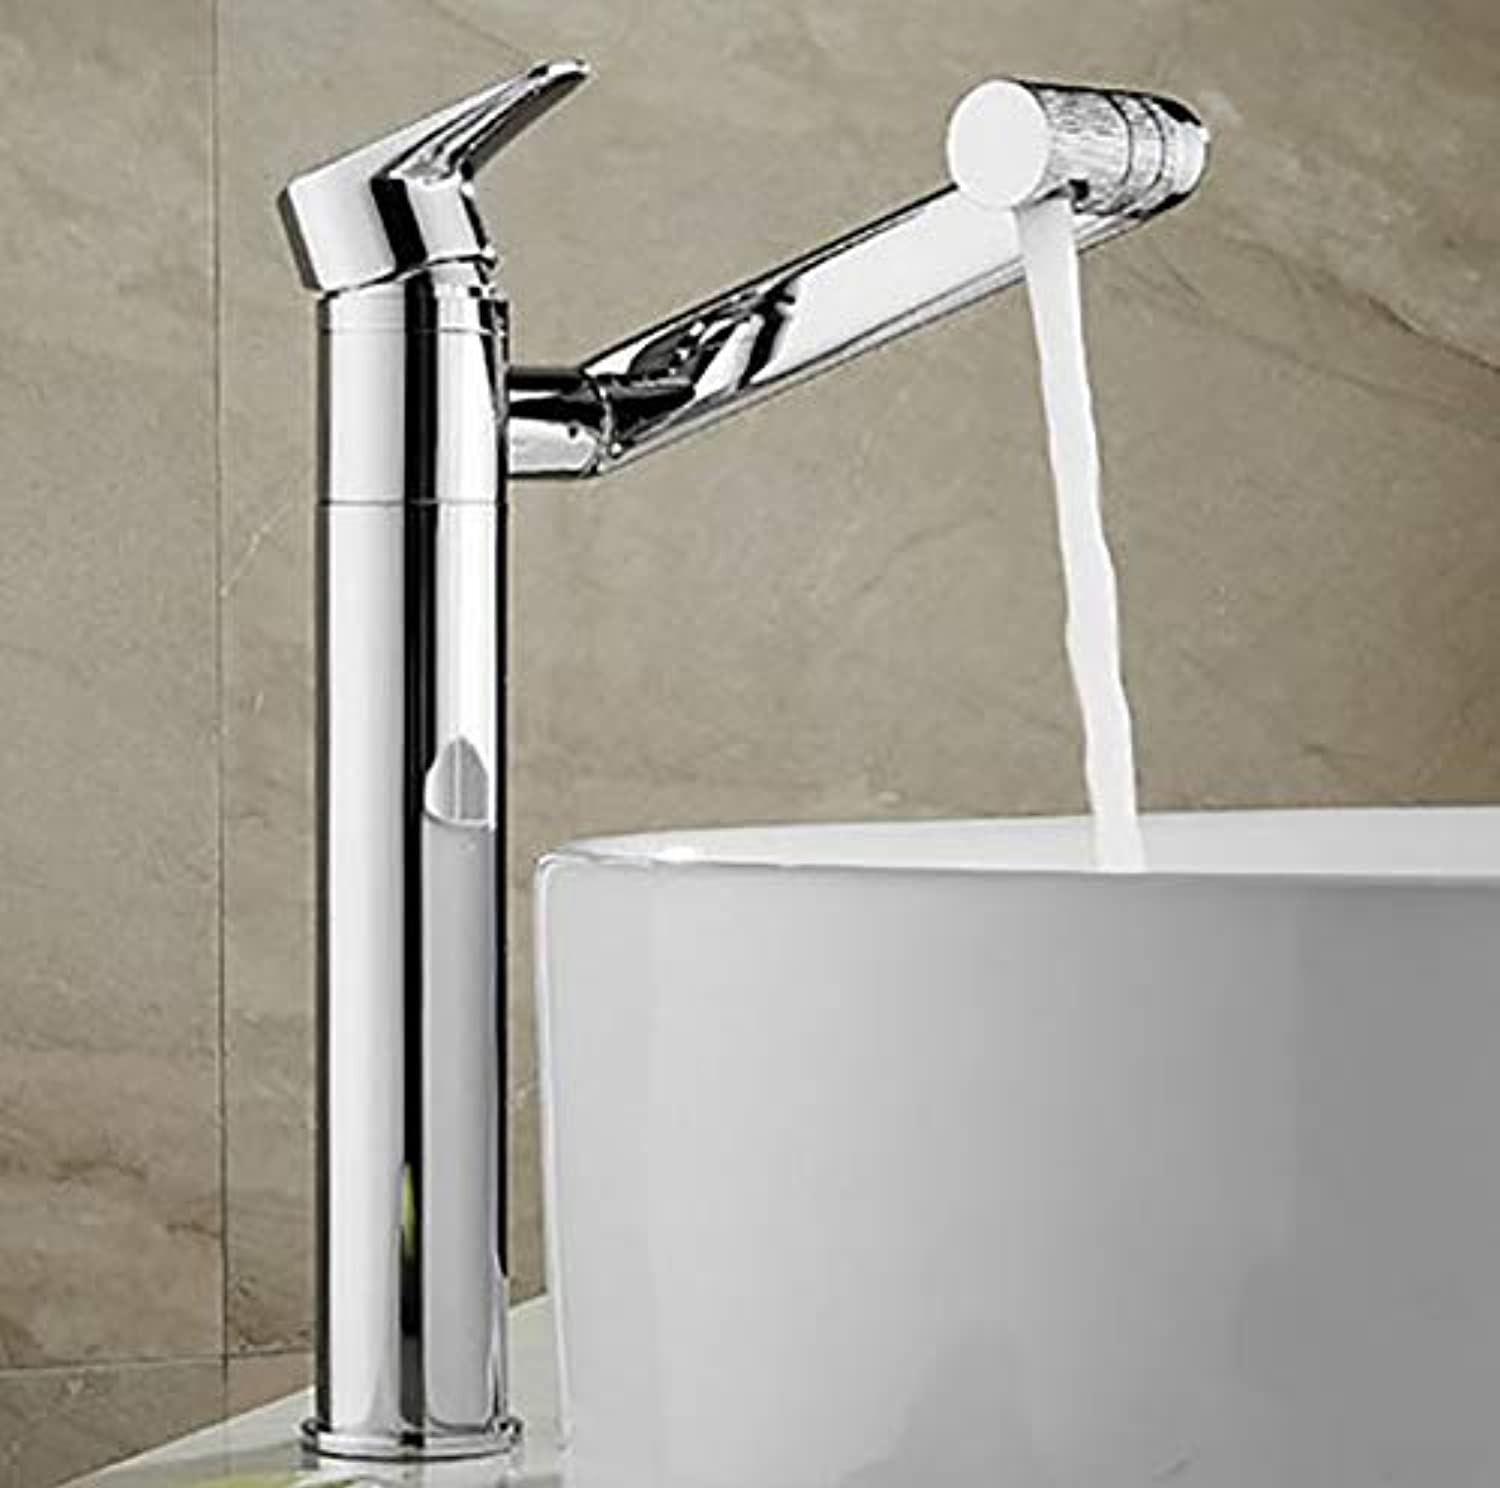 WYRSXPY Basin Tap Desktop Basin Faucet, redatable Bathroom Kitchen Hot And Cold Water Tap, All Copper Material, Single Hole Inssizetion (color   Silver, Size   High)